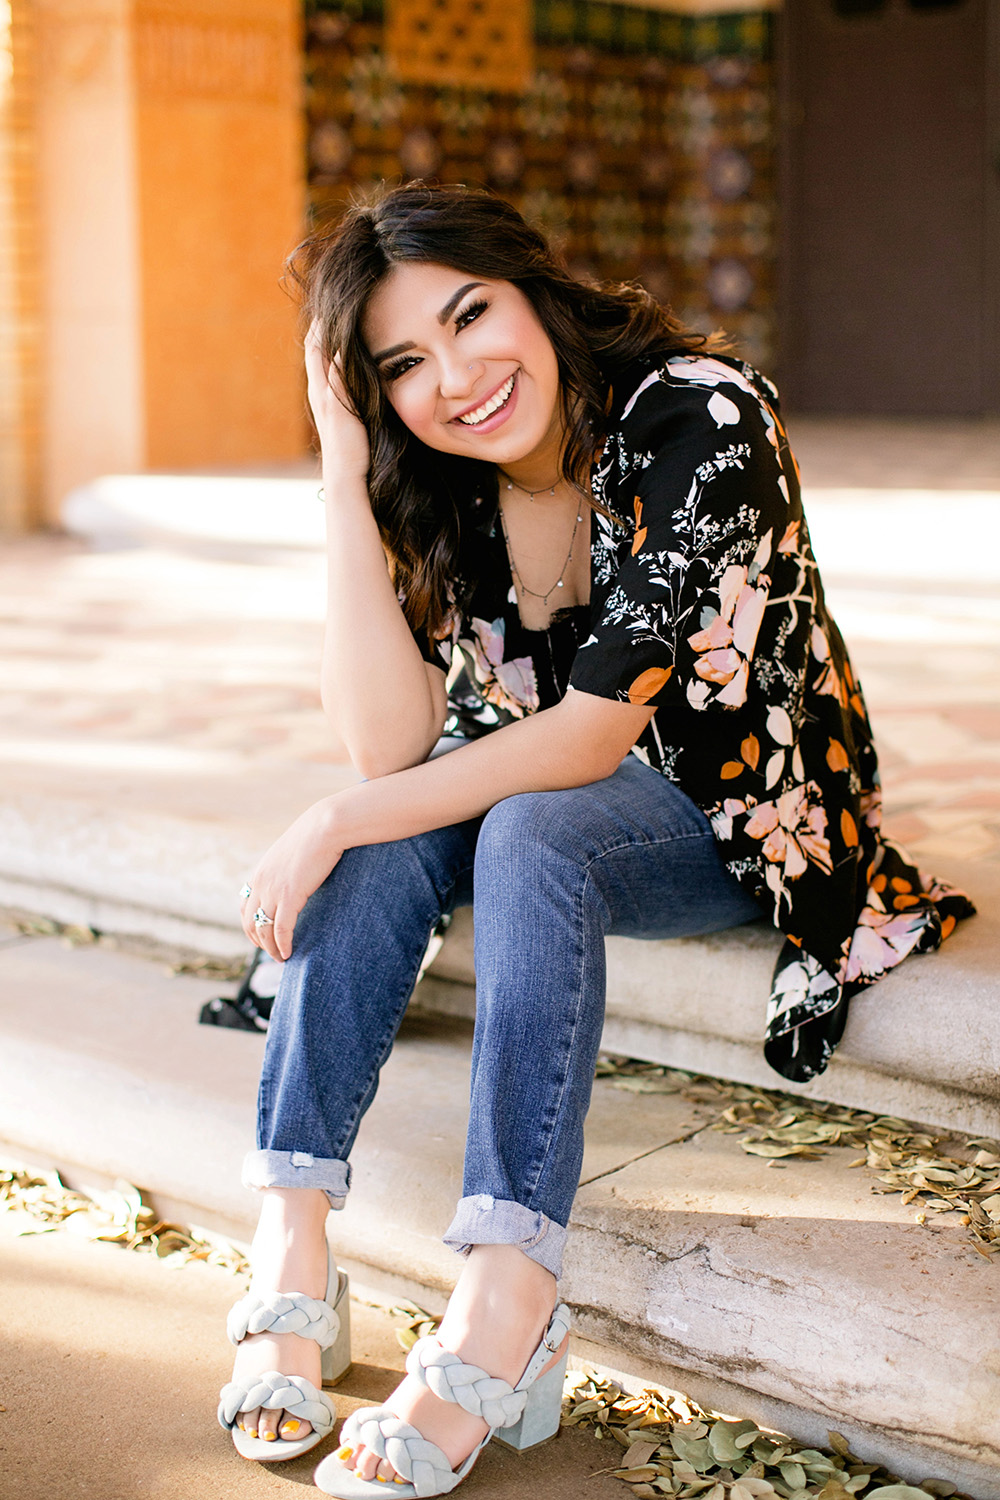 mira-senior-portrait-downtown-lubbock-high-school-building-04.jpg